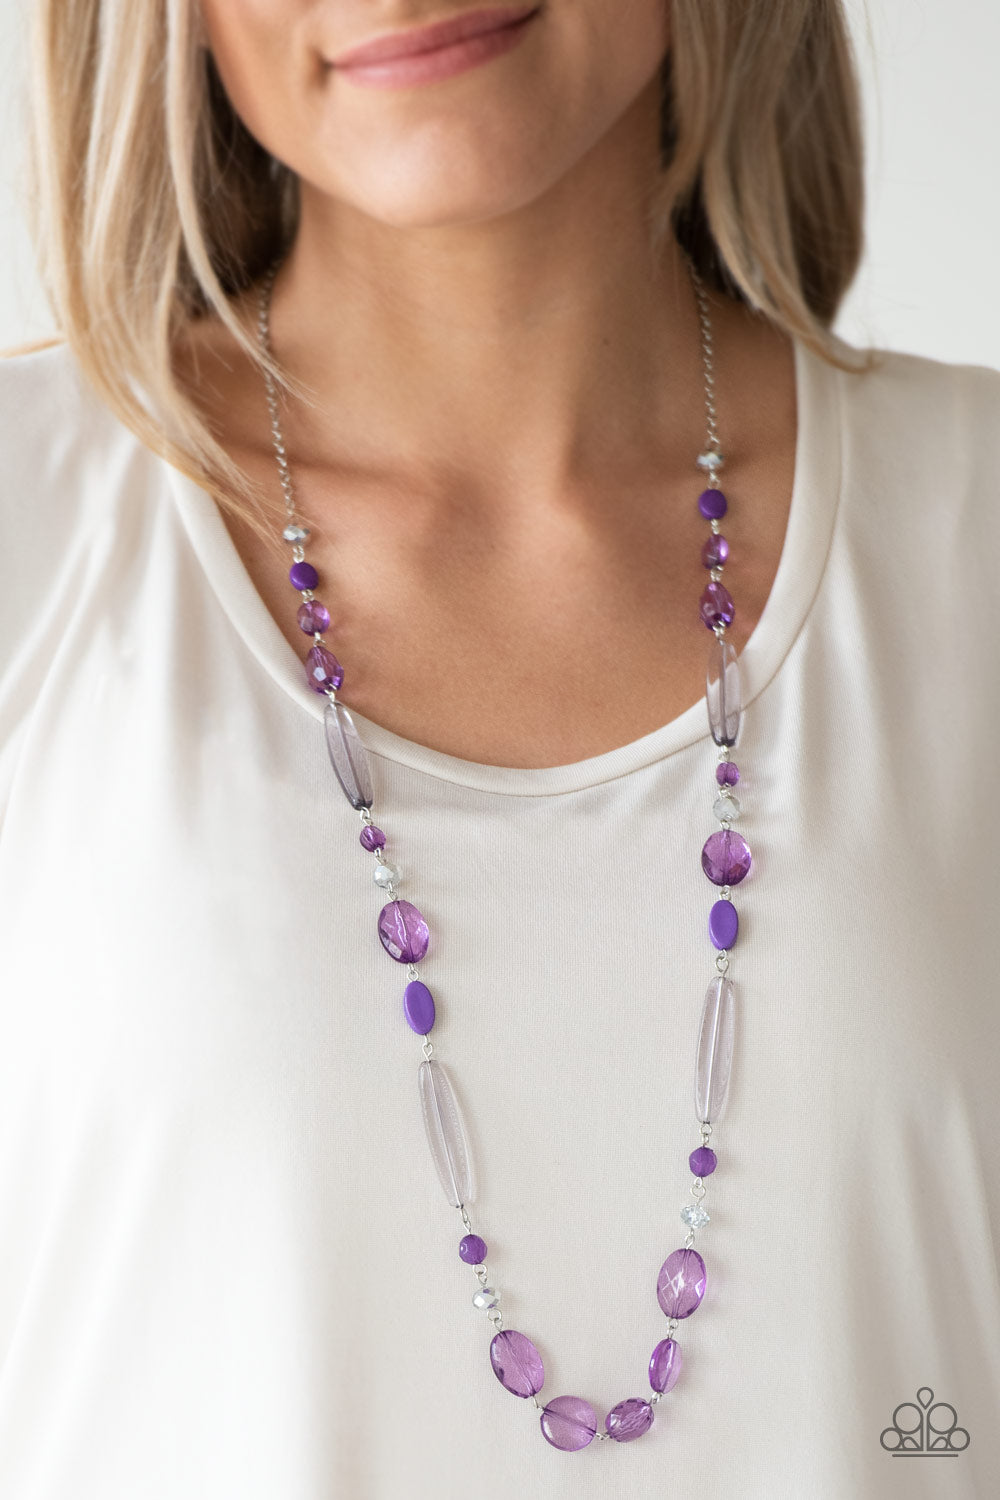 Varying in shape and shimmer, faceted purple and metallic crystal-like beads trickle down the chest for a whimsical look. Features an adjustable clasp closure.  Sold as one individual necklace. Includes one pair of matching earrings.  Always nickel and lead free.